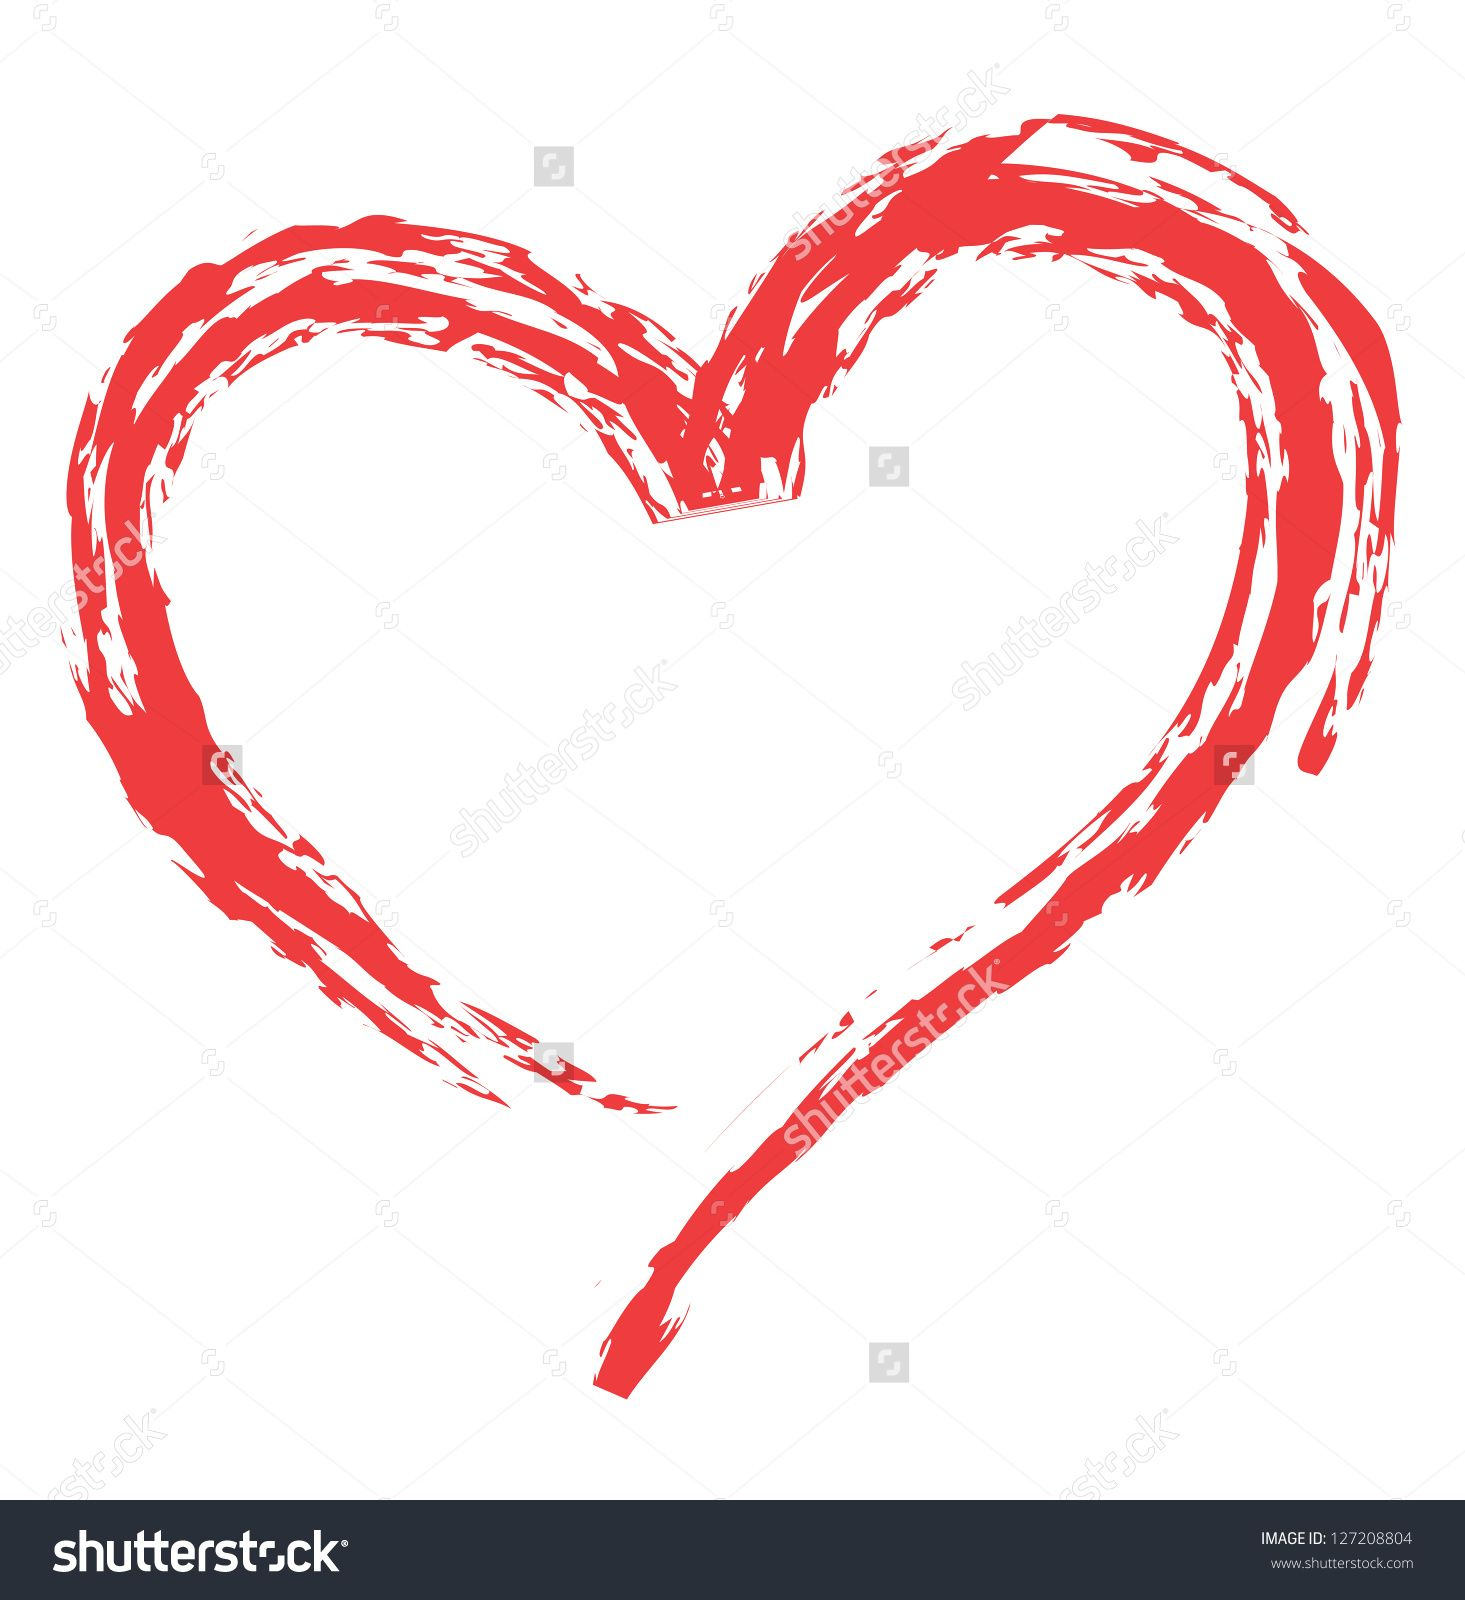 Image result for symbols of love tiny tattoo pinterest tattoo image result for symbols of love buycottarizona